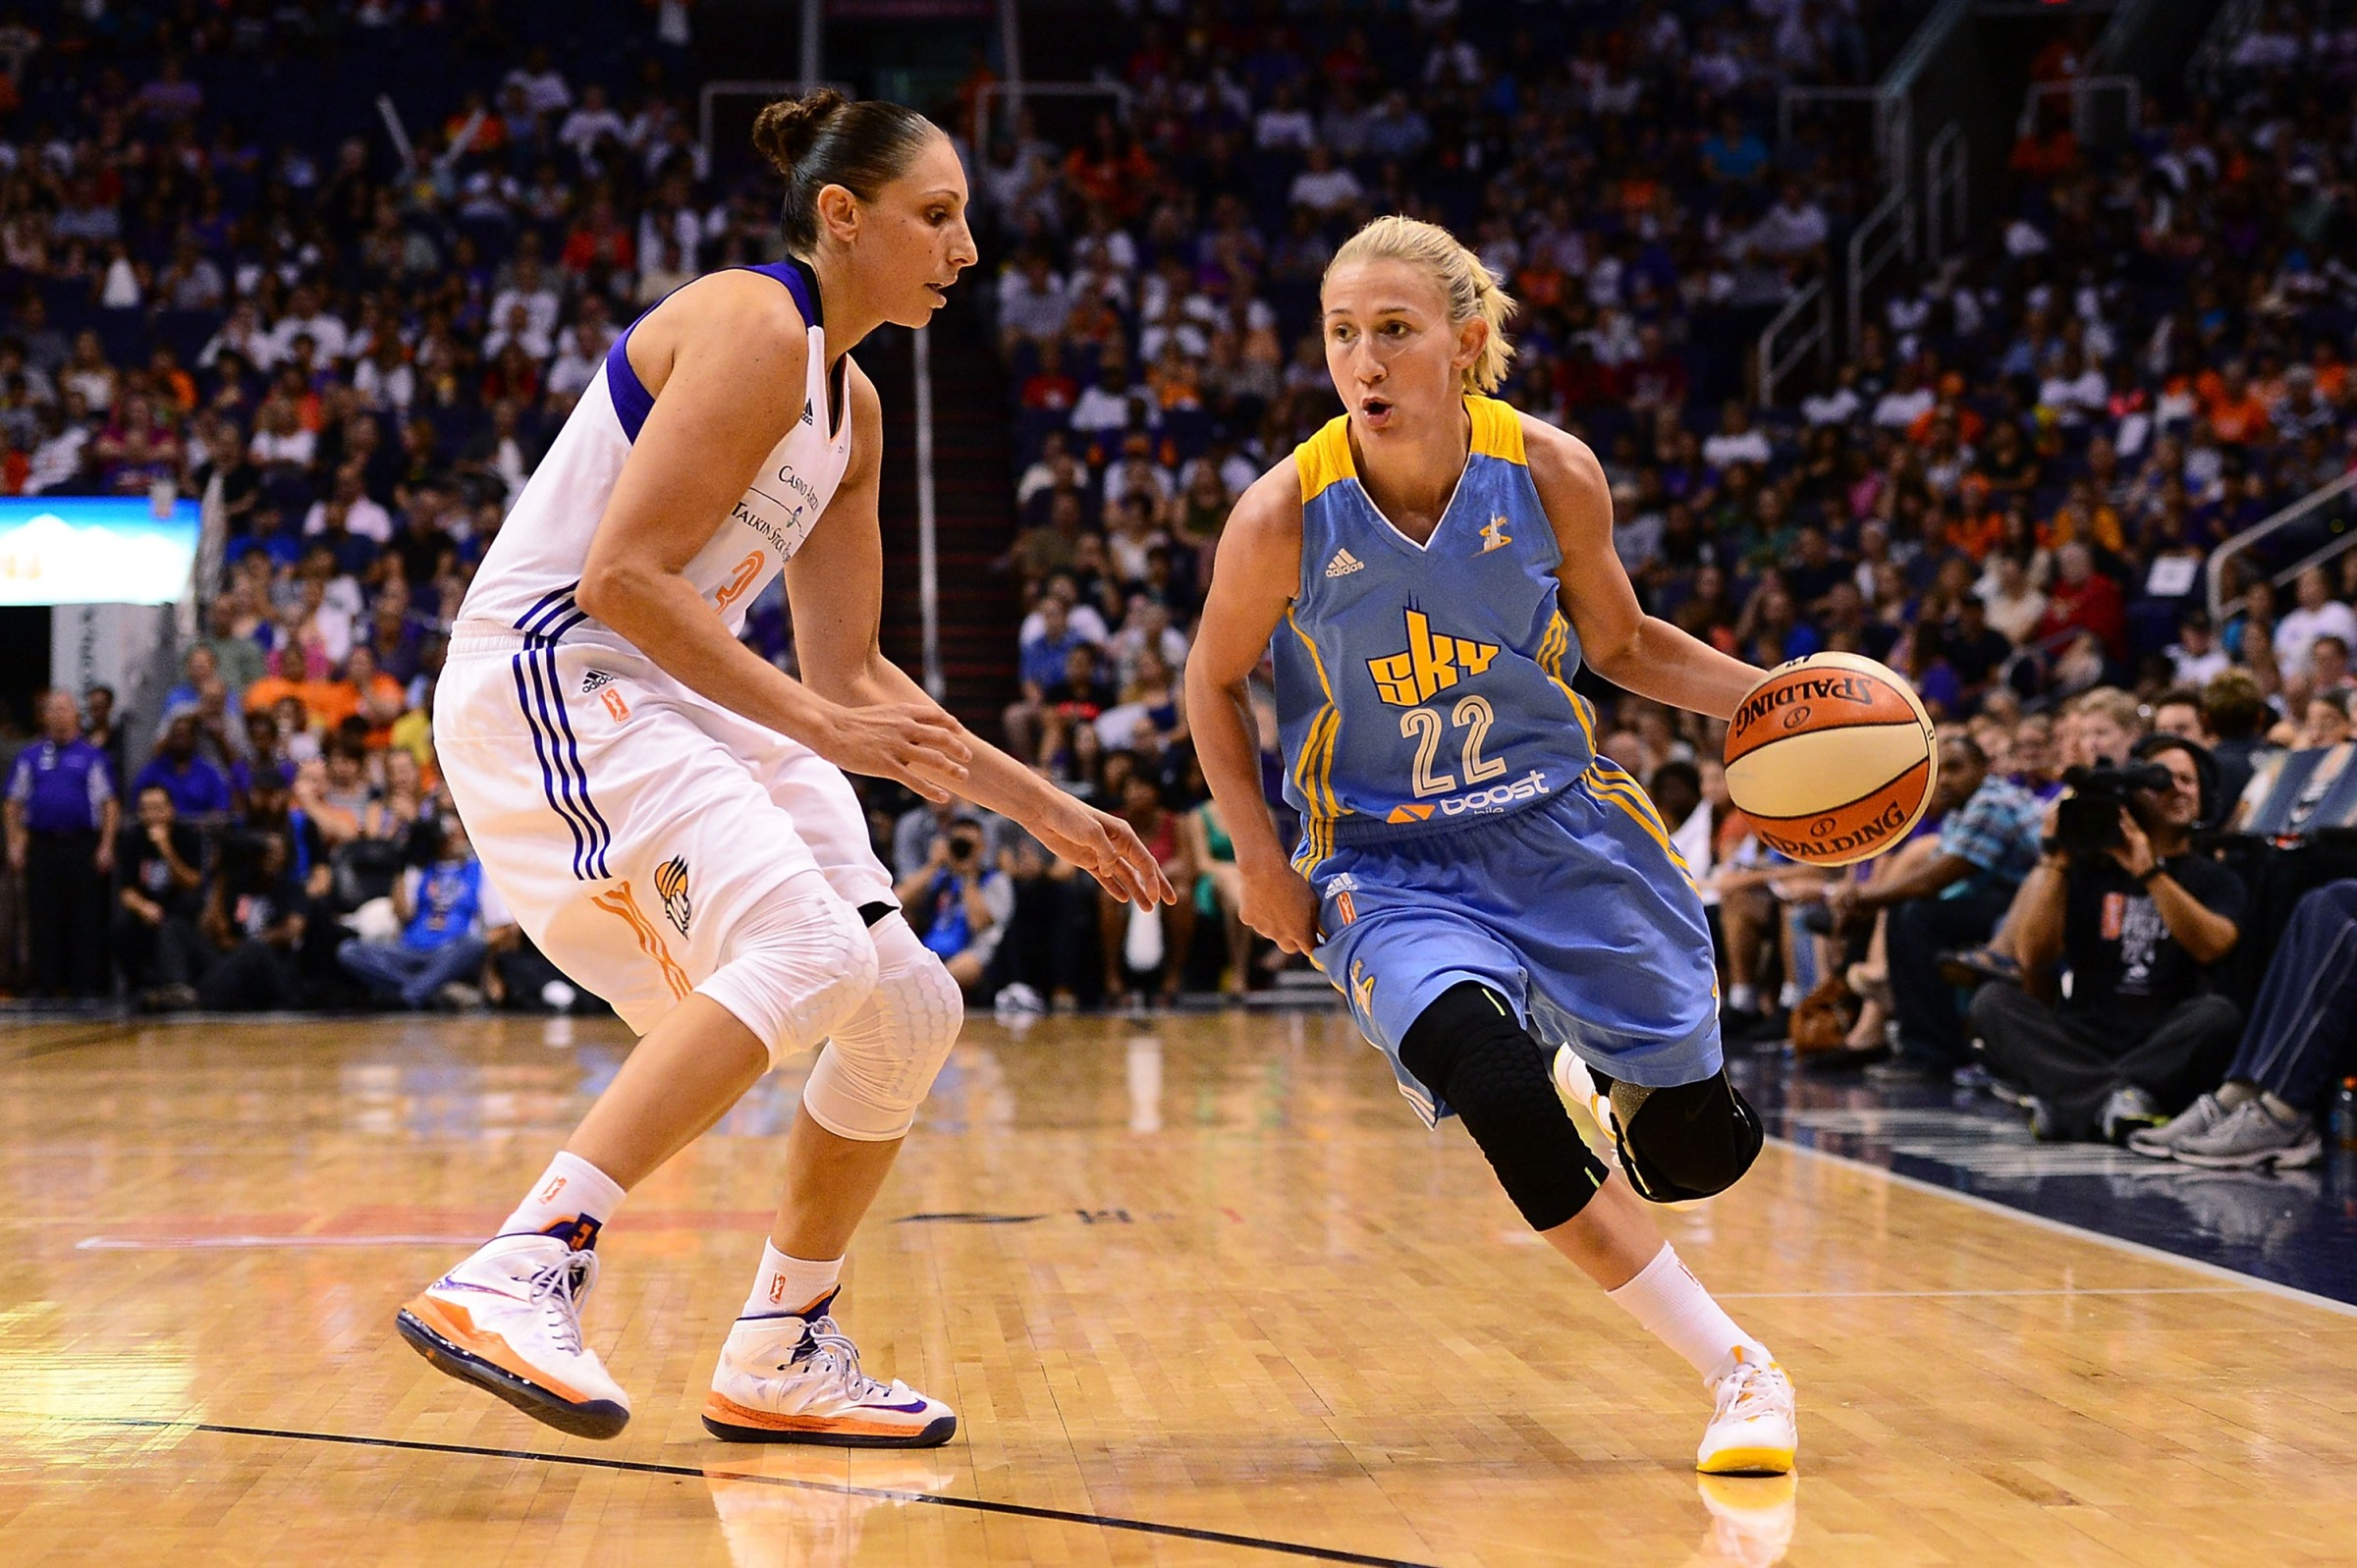 Courtney Vandersloot drives against Diana Taurasi in the first game of the 2014 WNBA Finals